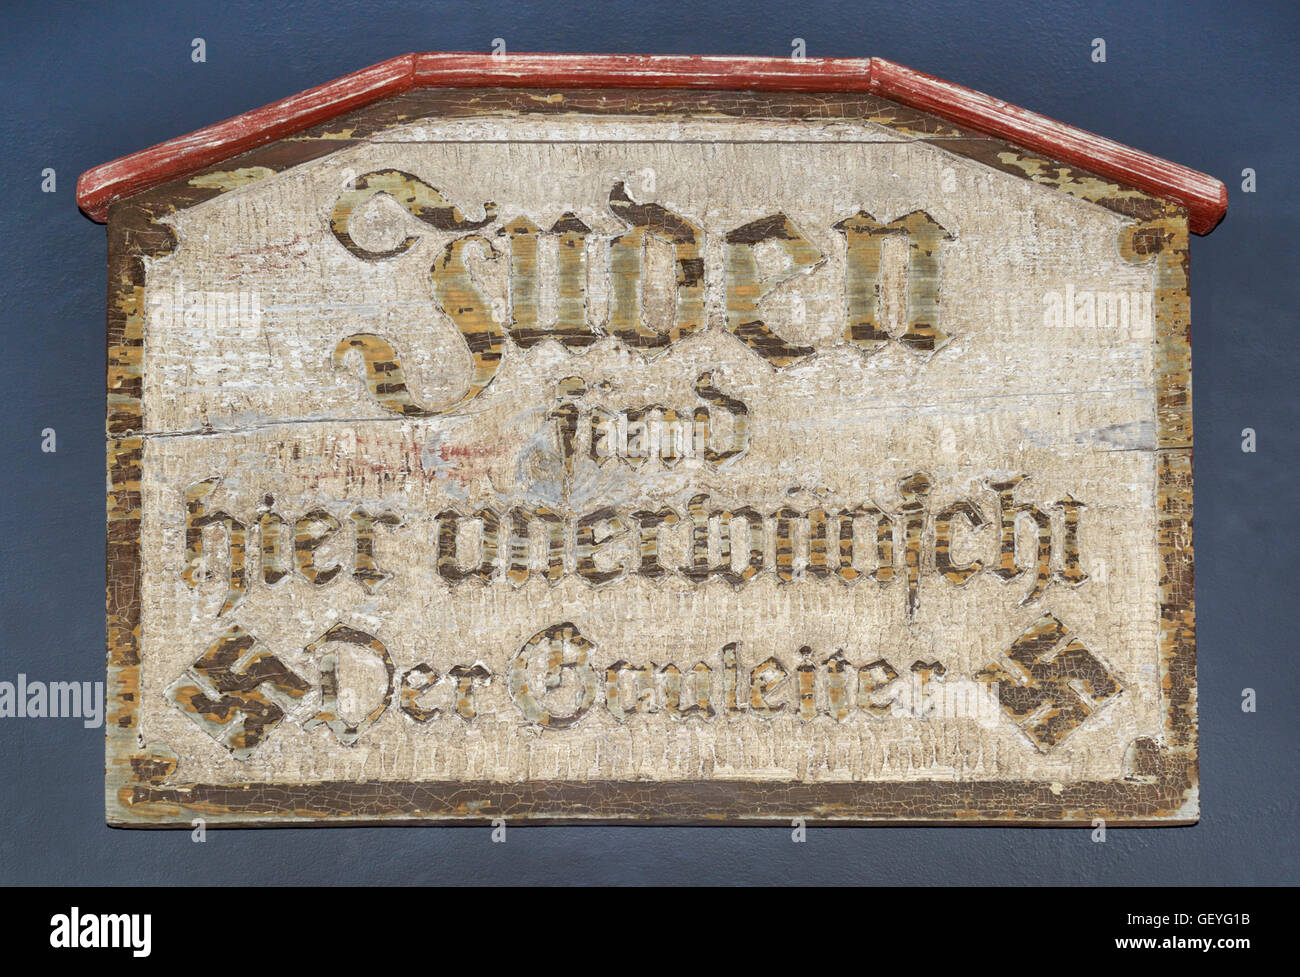 'Jews not wanted here' sign issued by Goebbels, Berlin, early 1930s, Nazi Germany - Stock Image